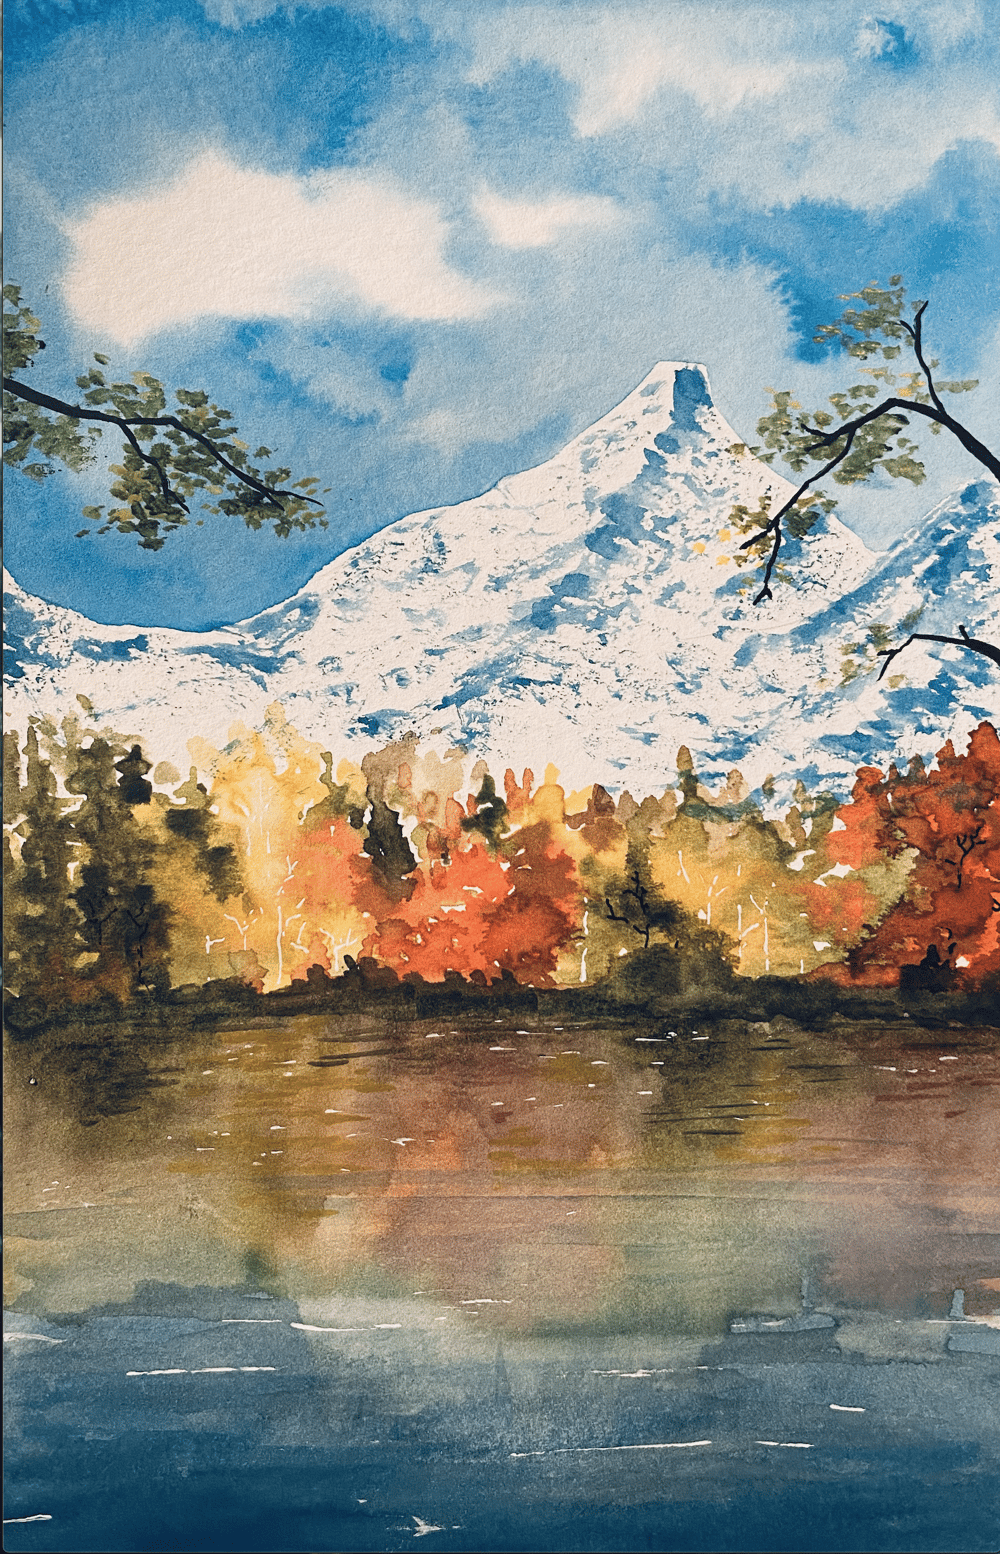 AutumnLandscapes_lake - image 1 - student project